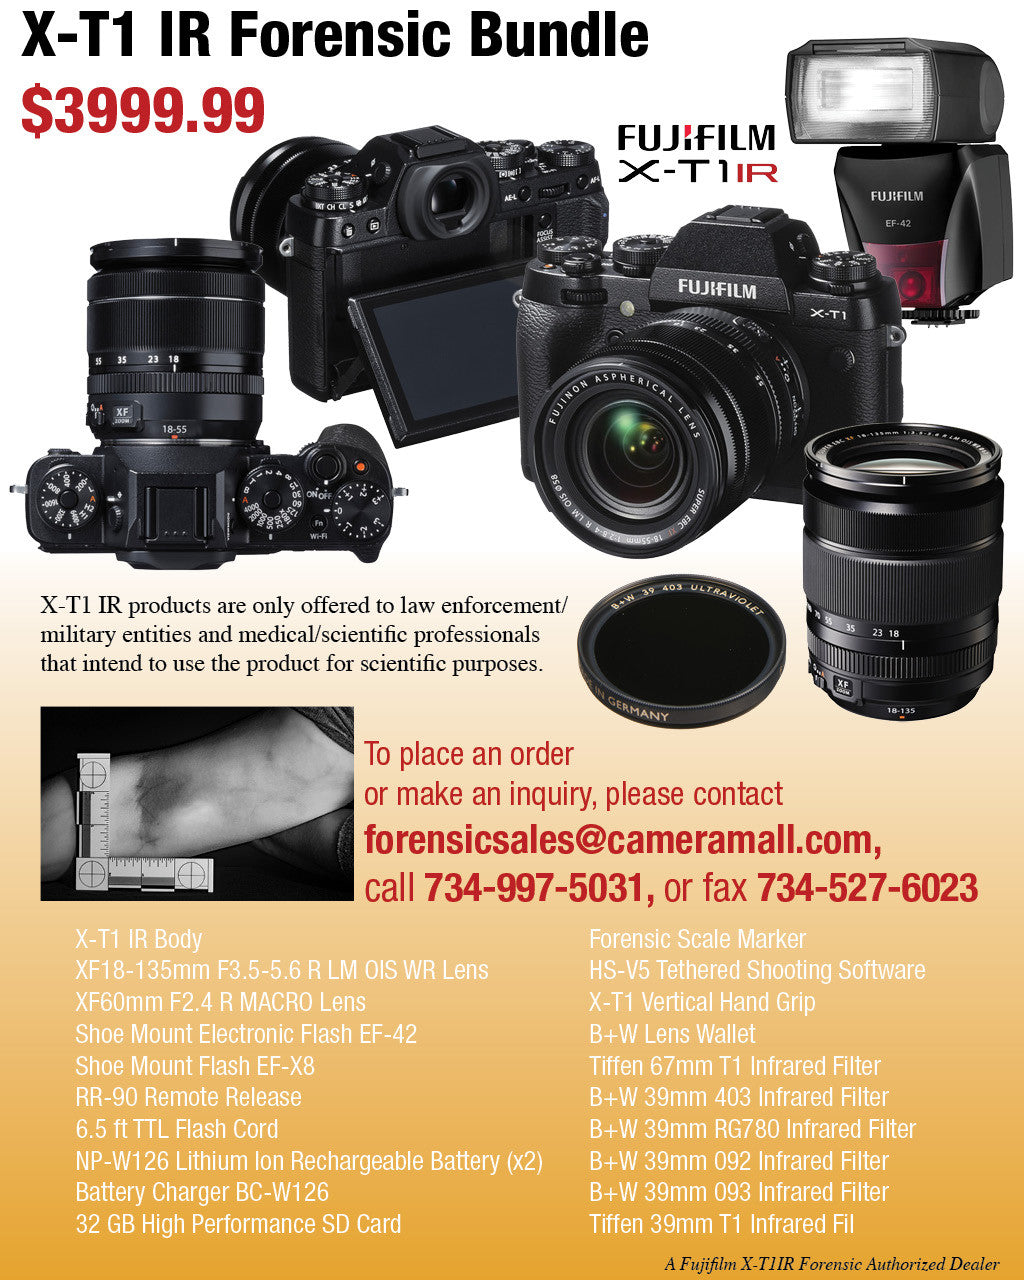 X-T1 IR Forensic Bundle